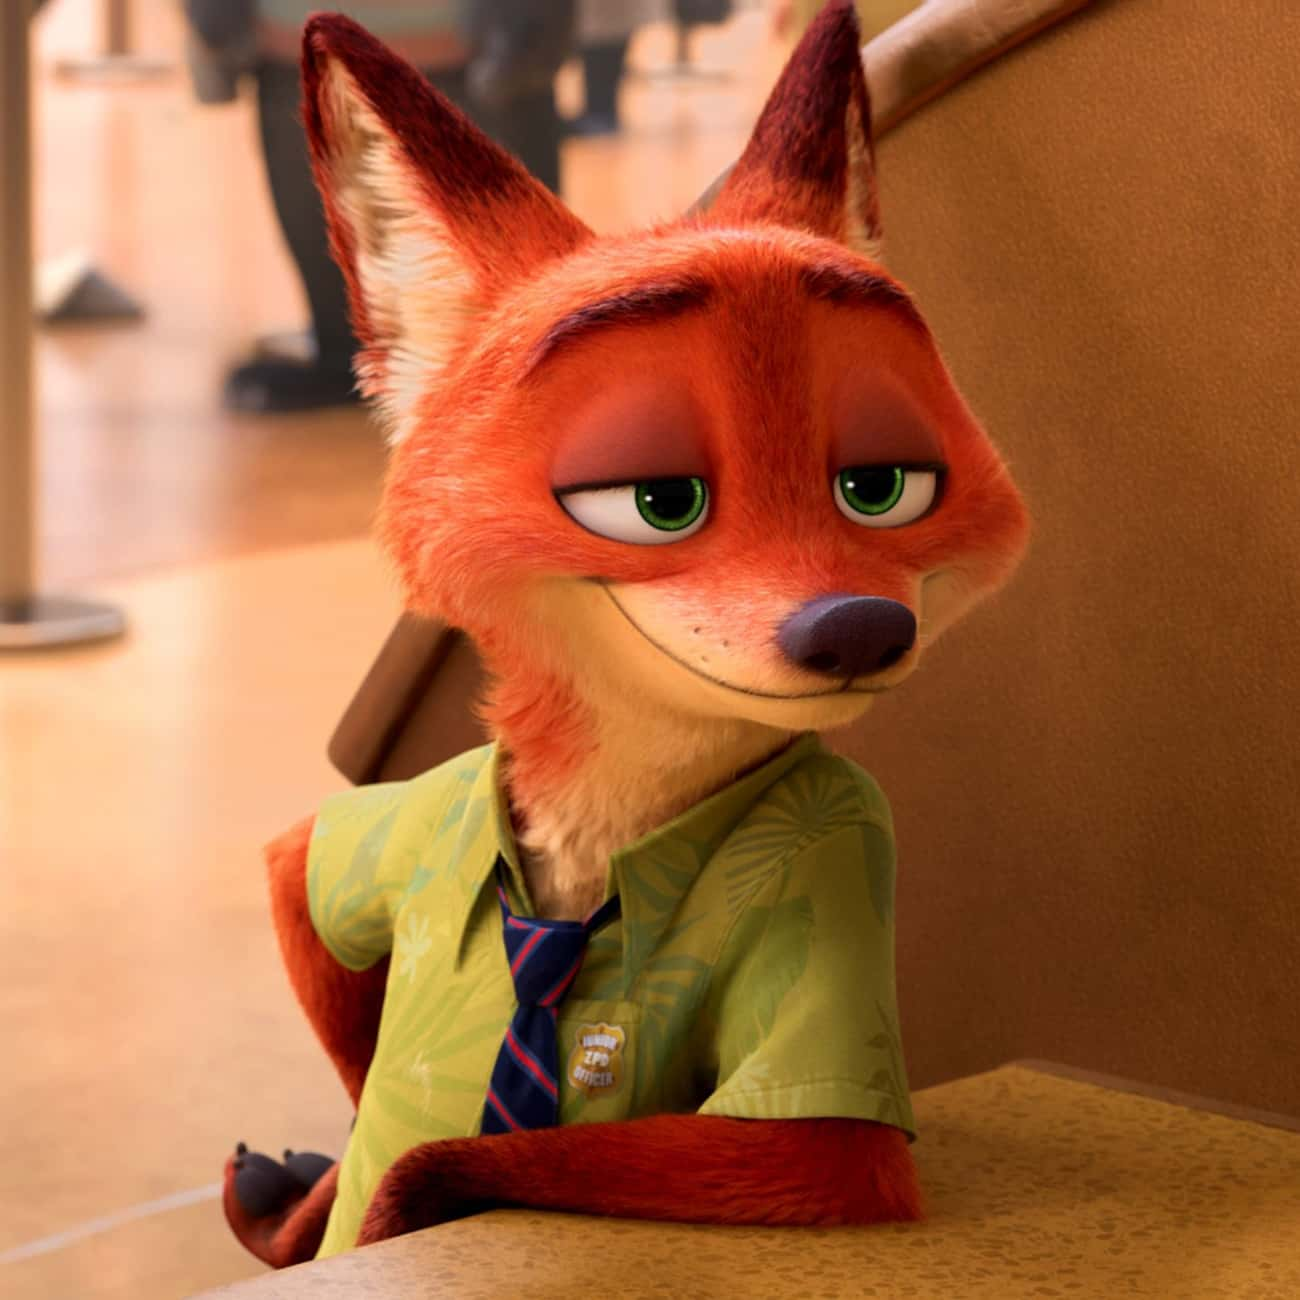 You Bunnies, So Emotional is listed (or ranked) 1 on the list Zootopia Movie Quotes